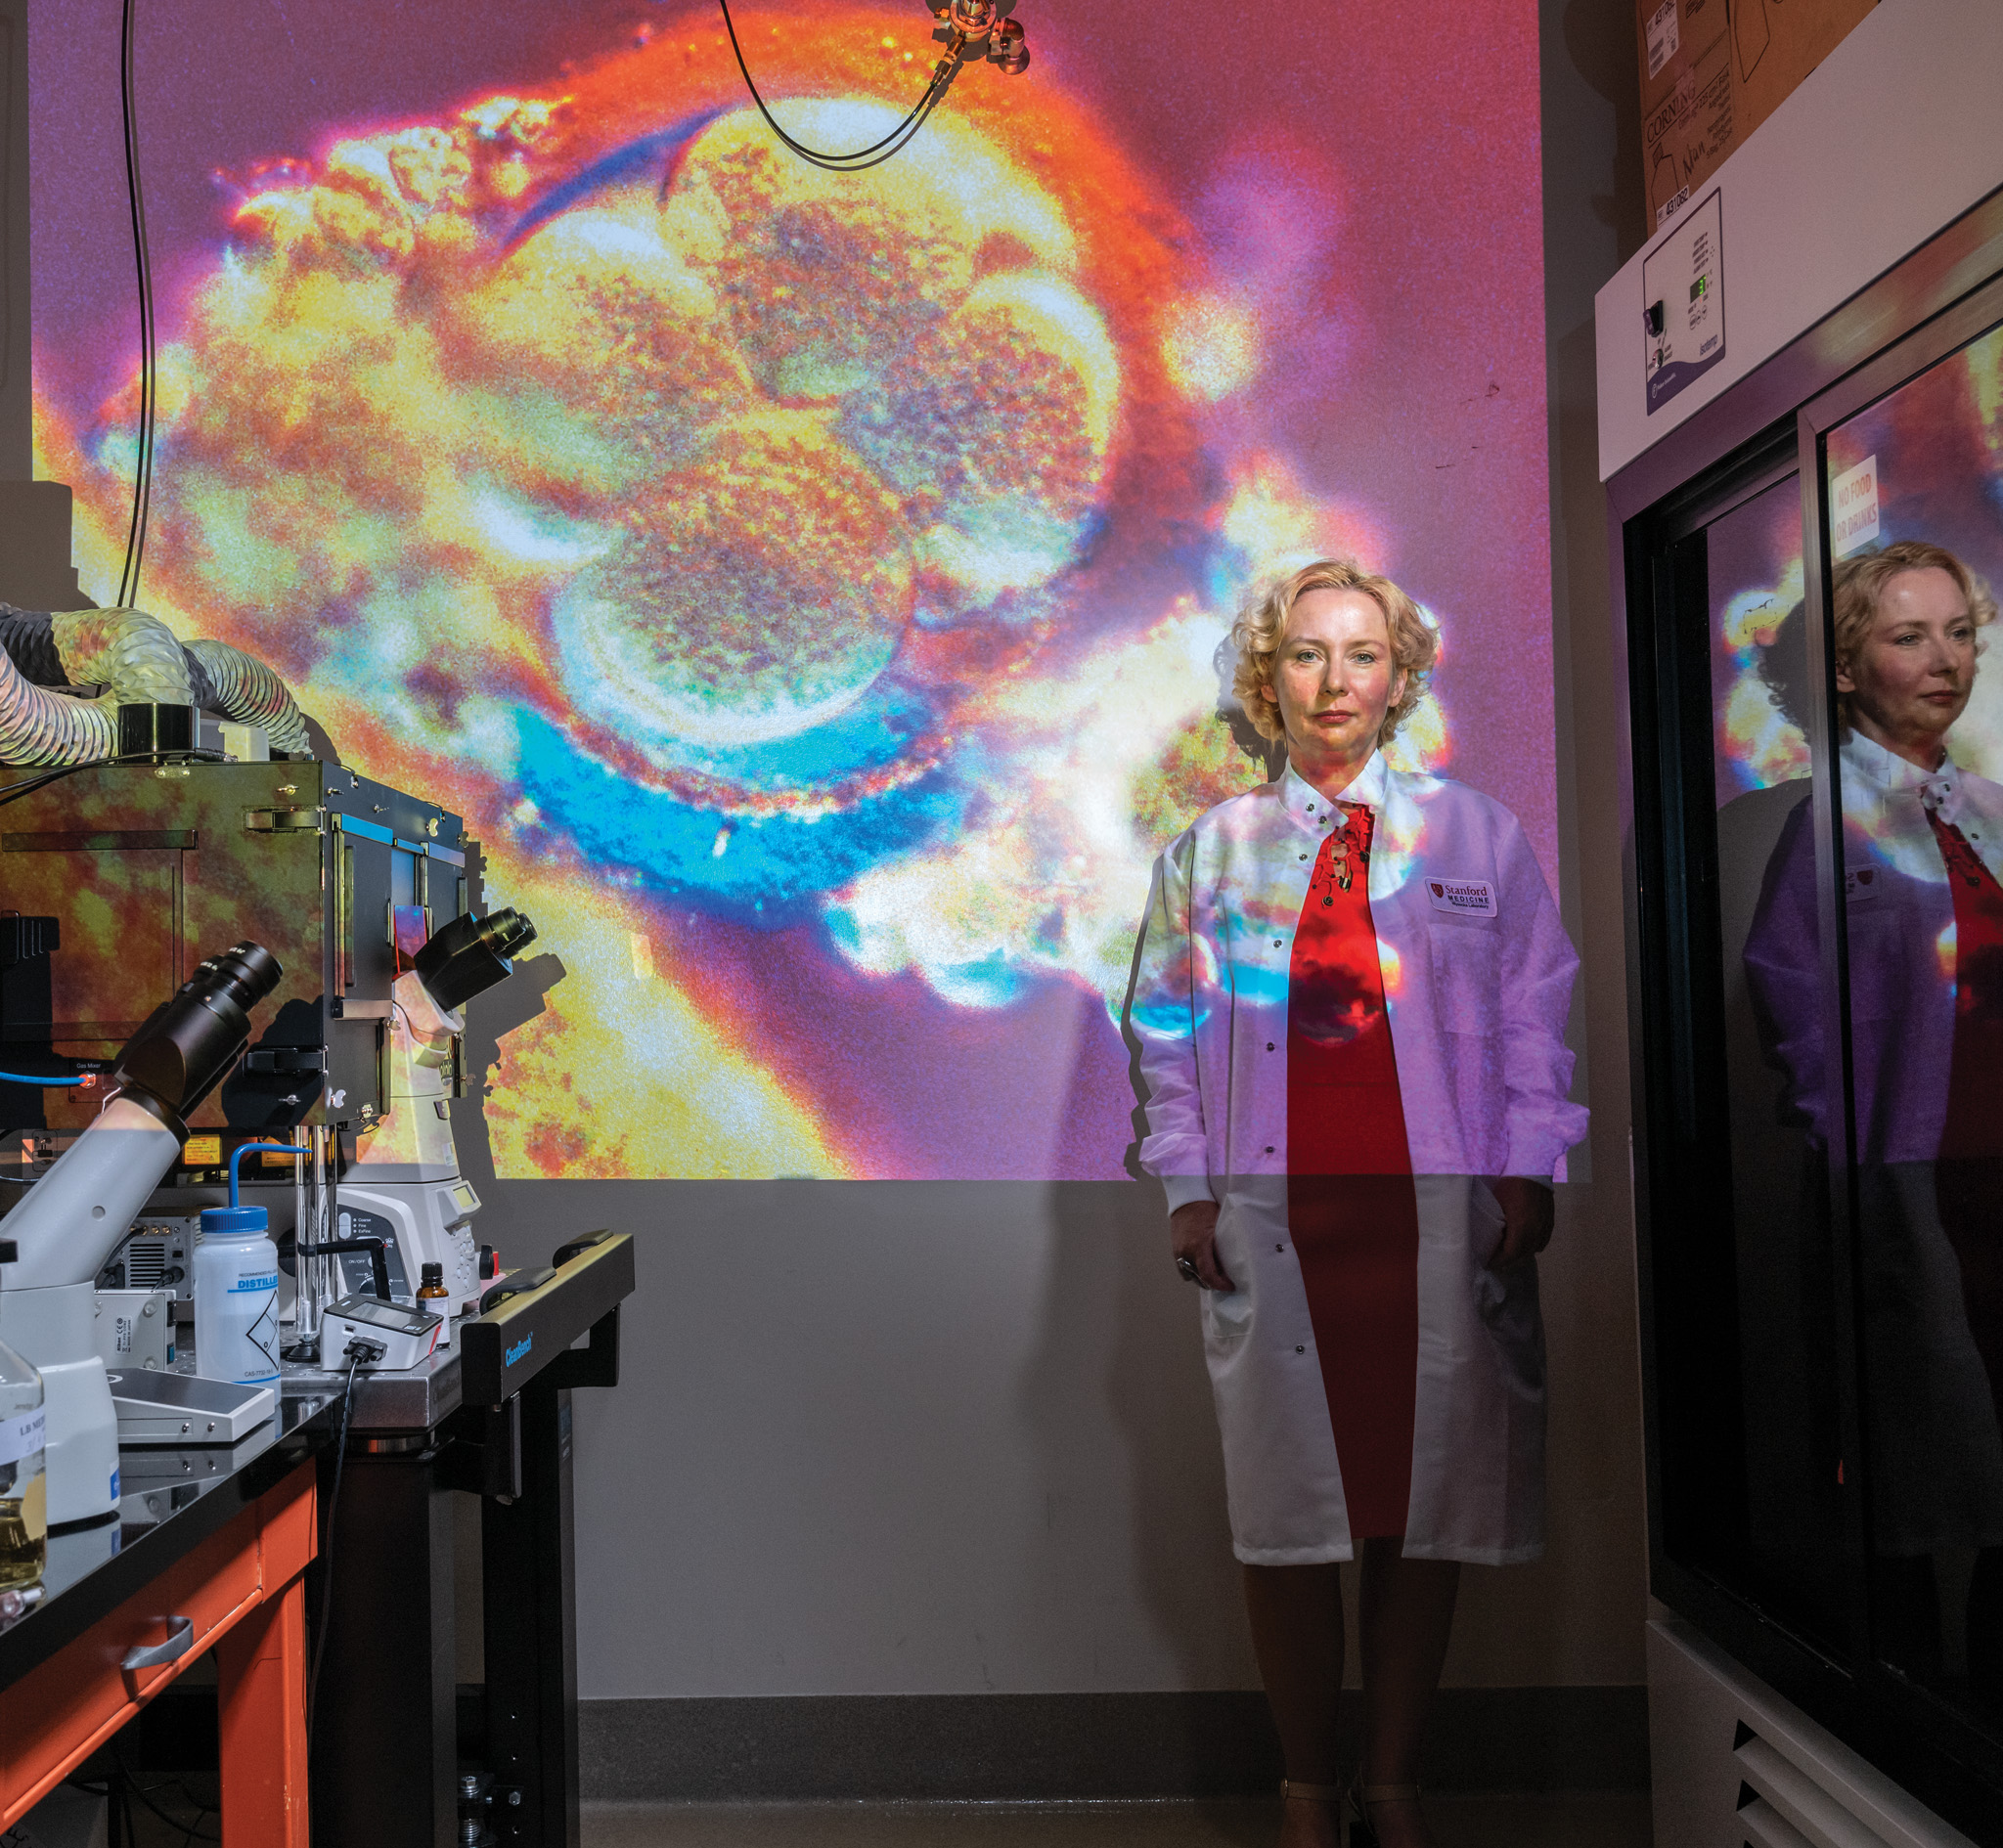 Picture of a scientist standing against a wall with a projection of cells on it